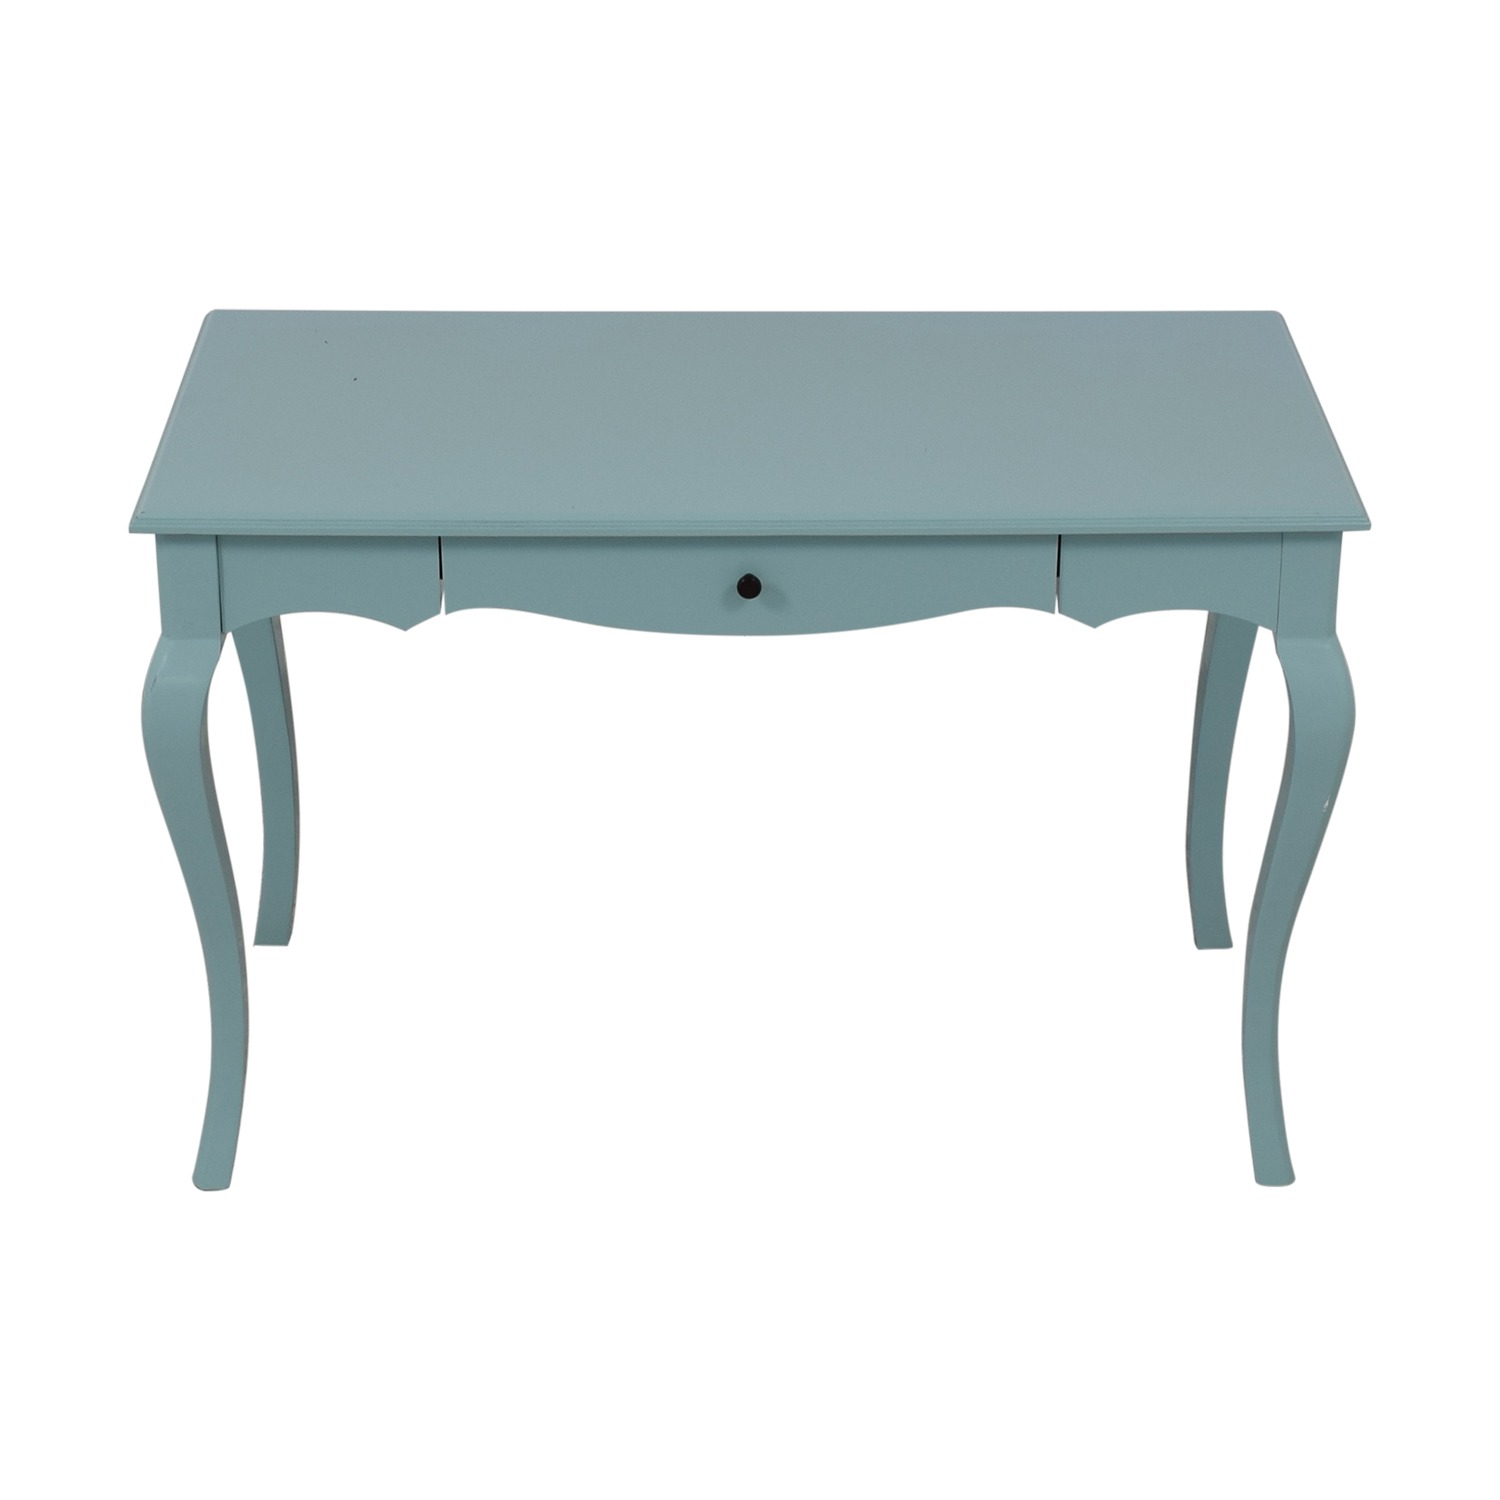 Pier 1 Desk / Tables